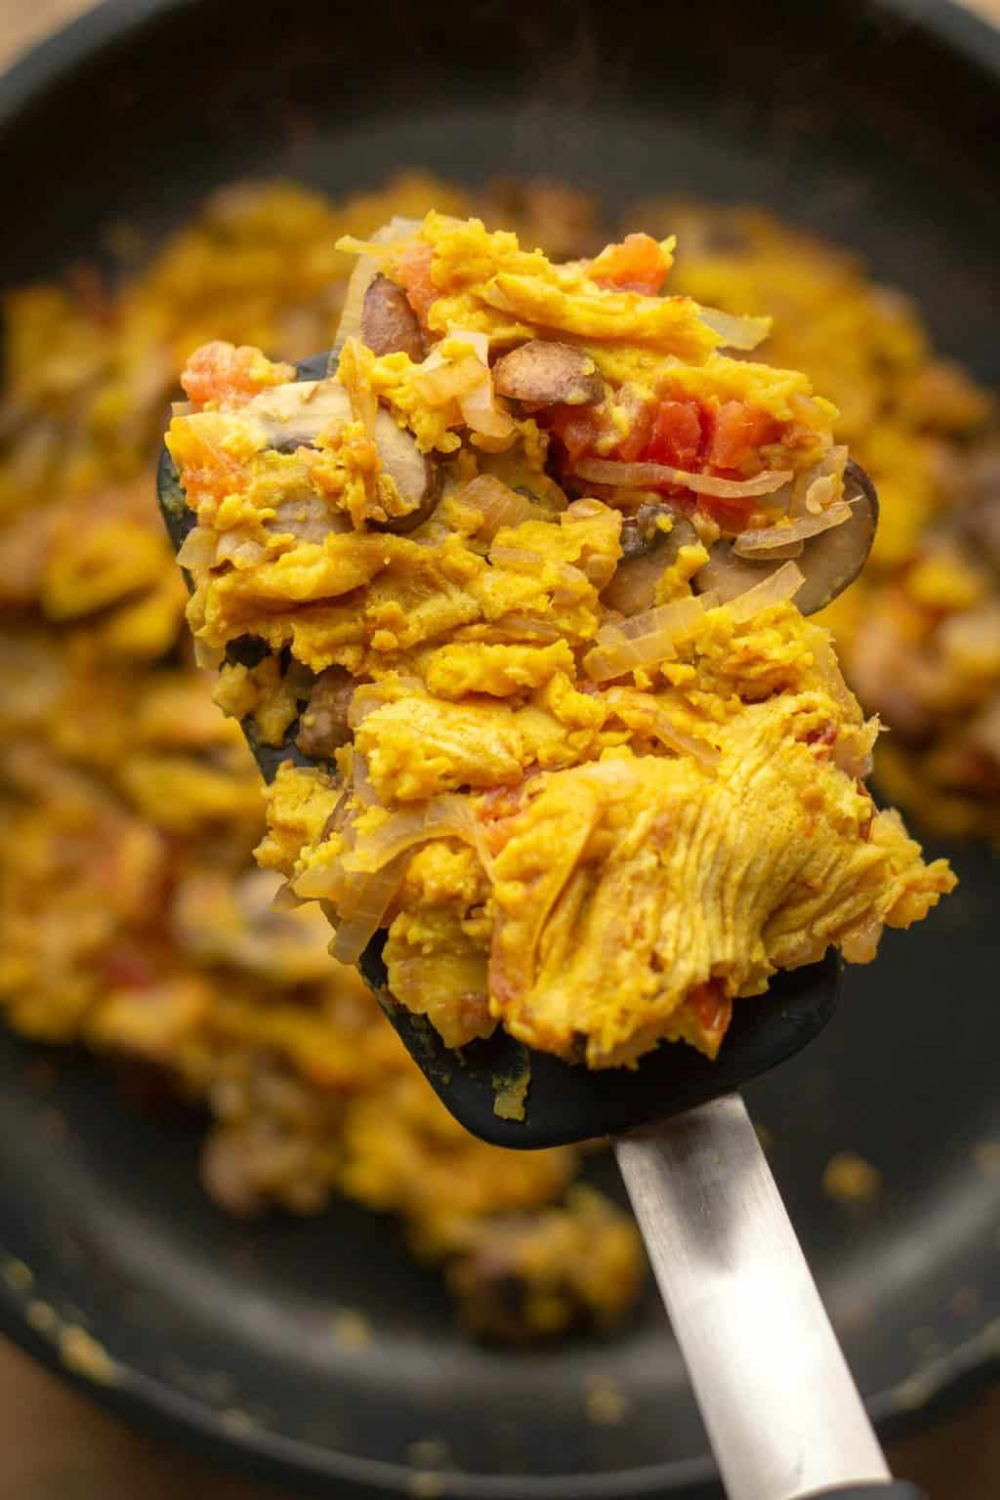 vegan scrambled eggs are made with chickpea flour instead of tofu for a filling and high protein breakfast scramble. |